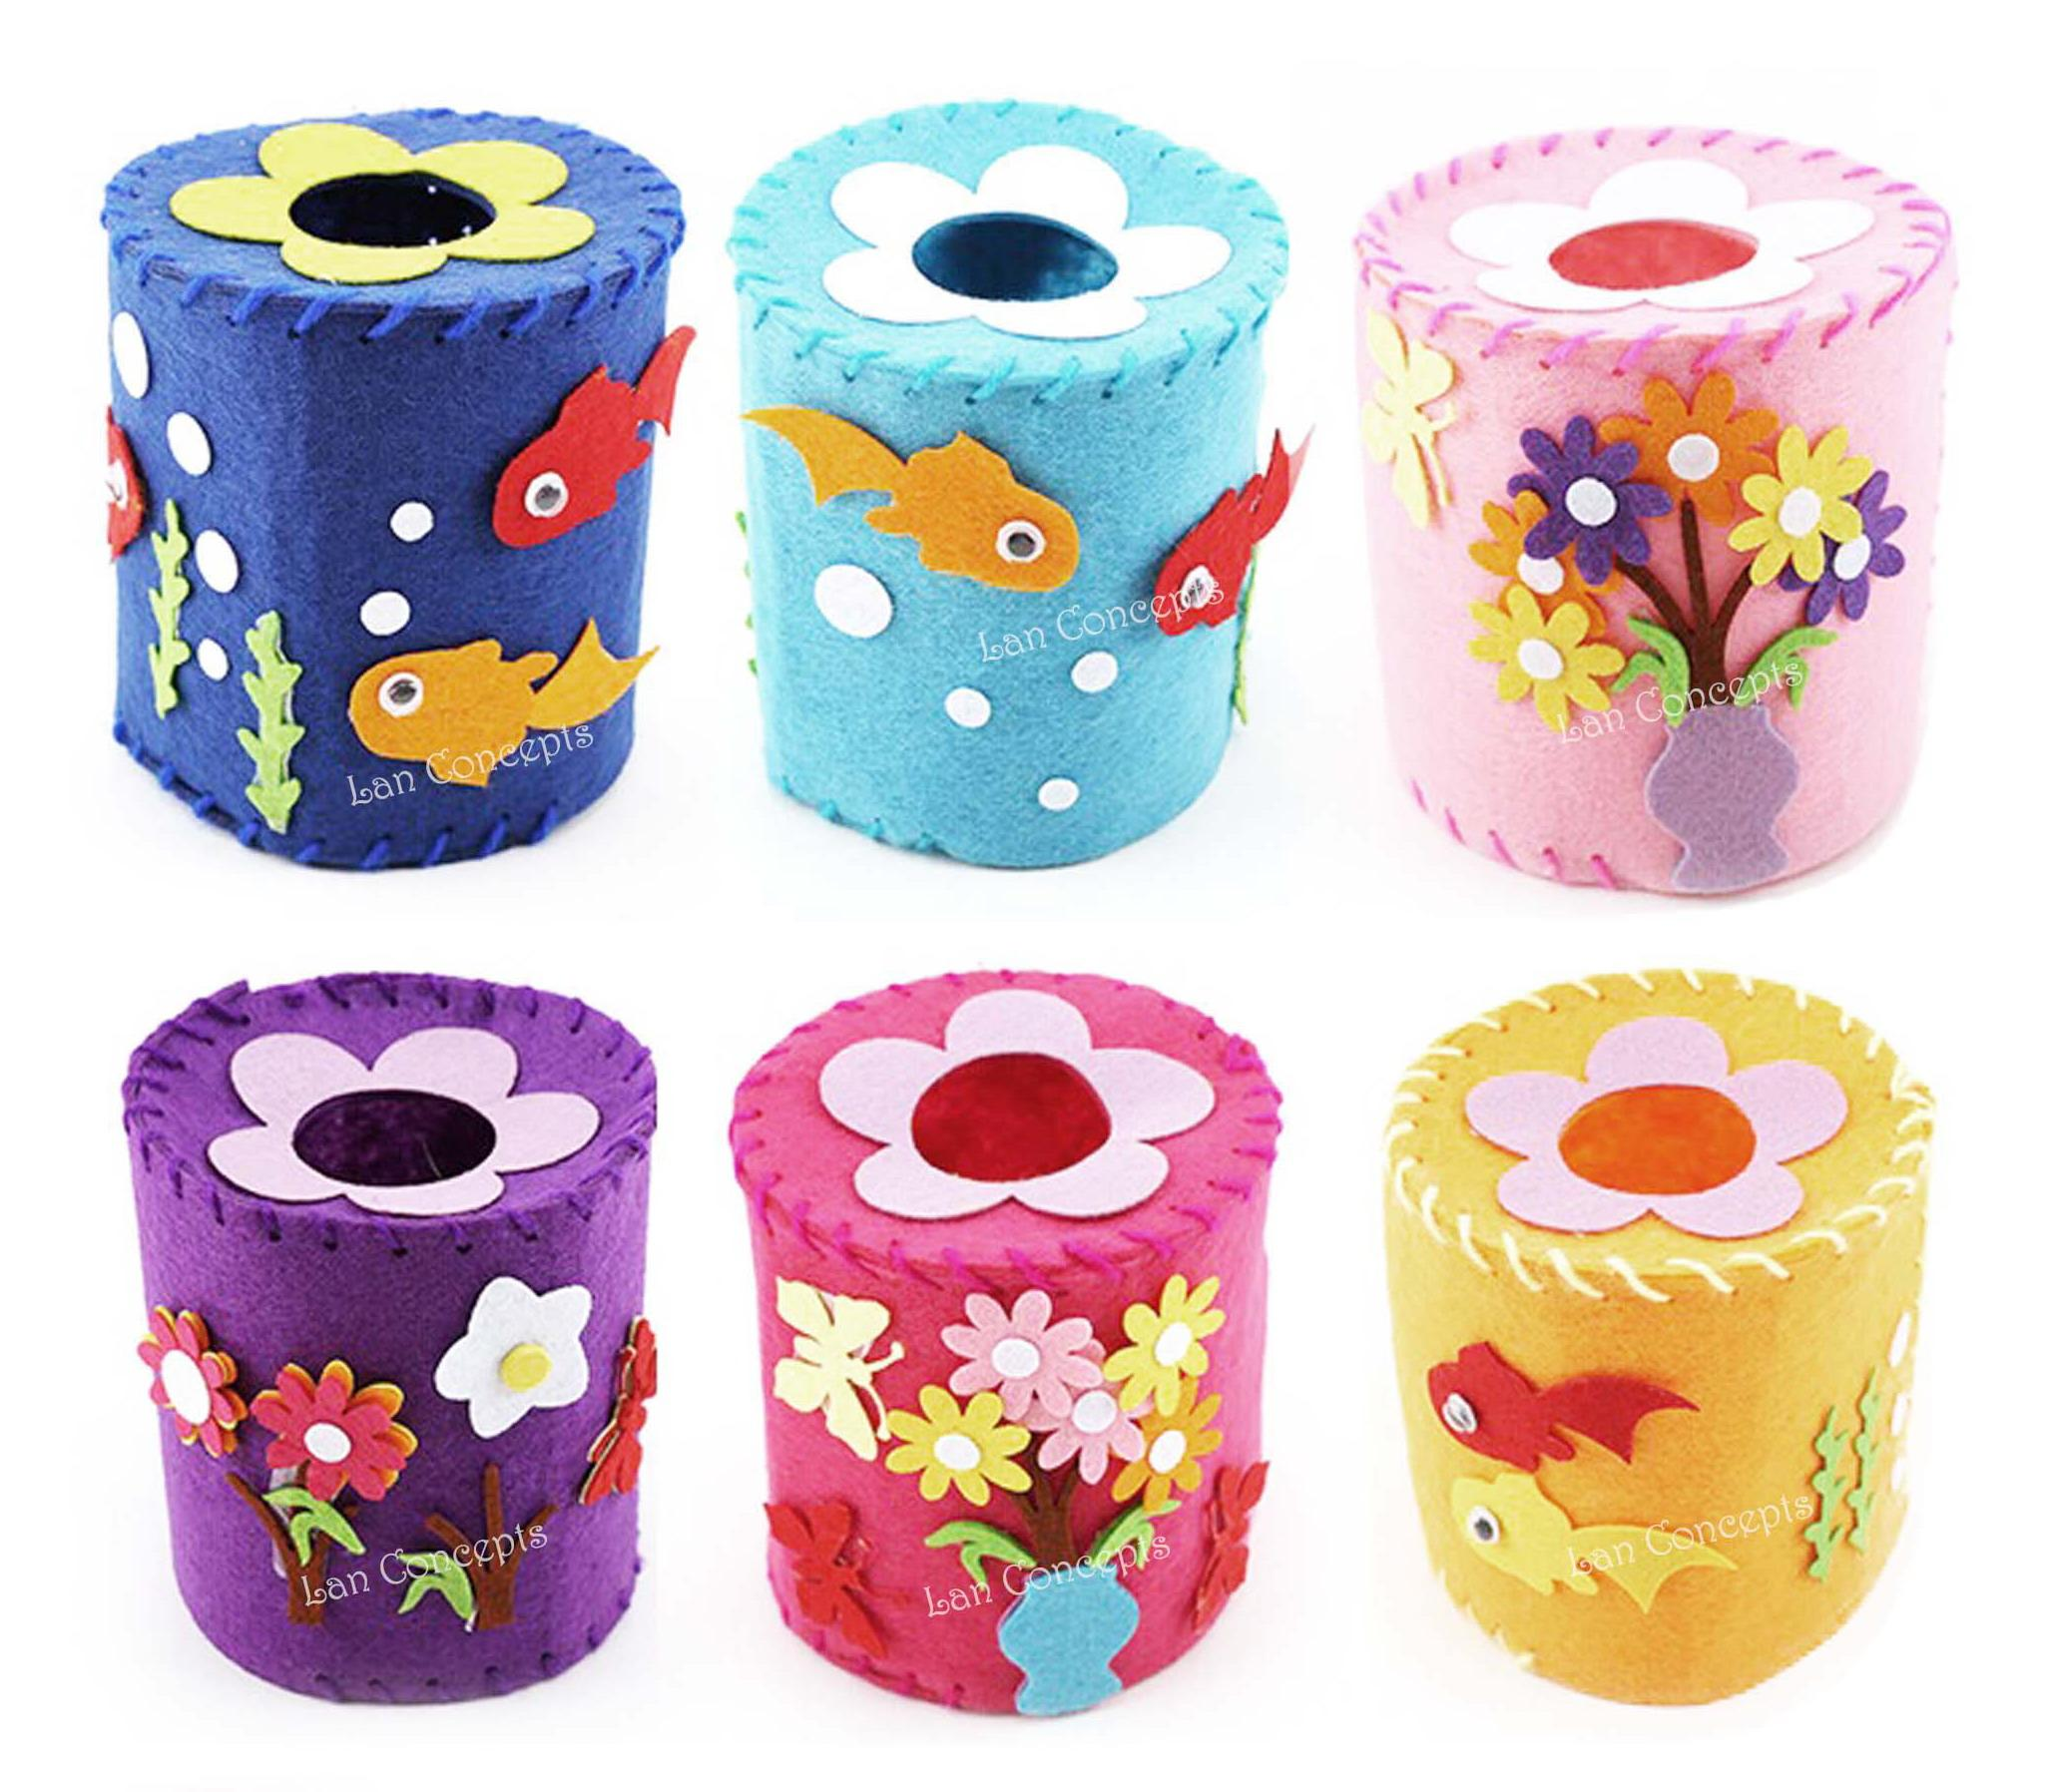 Craft kit for kids - Children Gift Diy Craft Kit Felt Tissue Toilet Paper Holder With Non Woven Sheets Knitting Wool And Needle 20 Sets Lot Wholesale